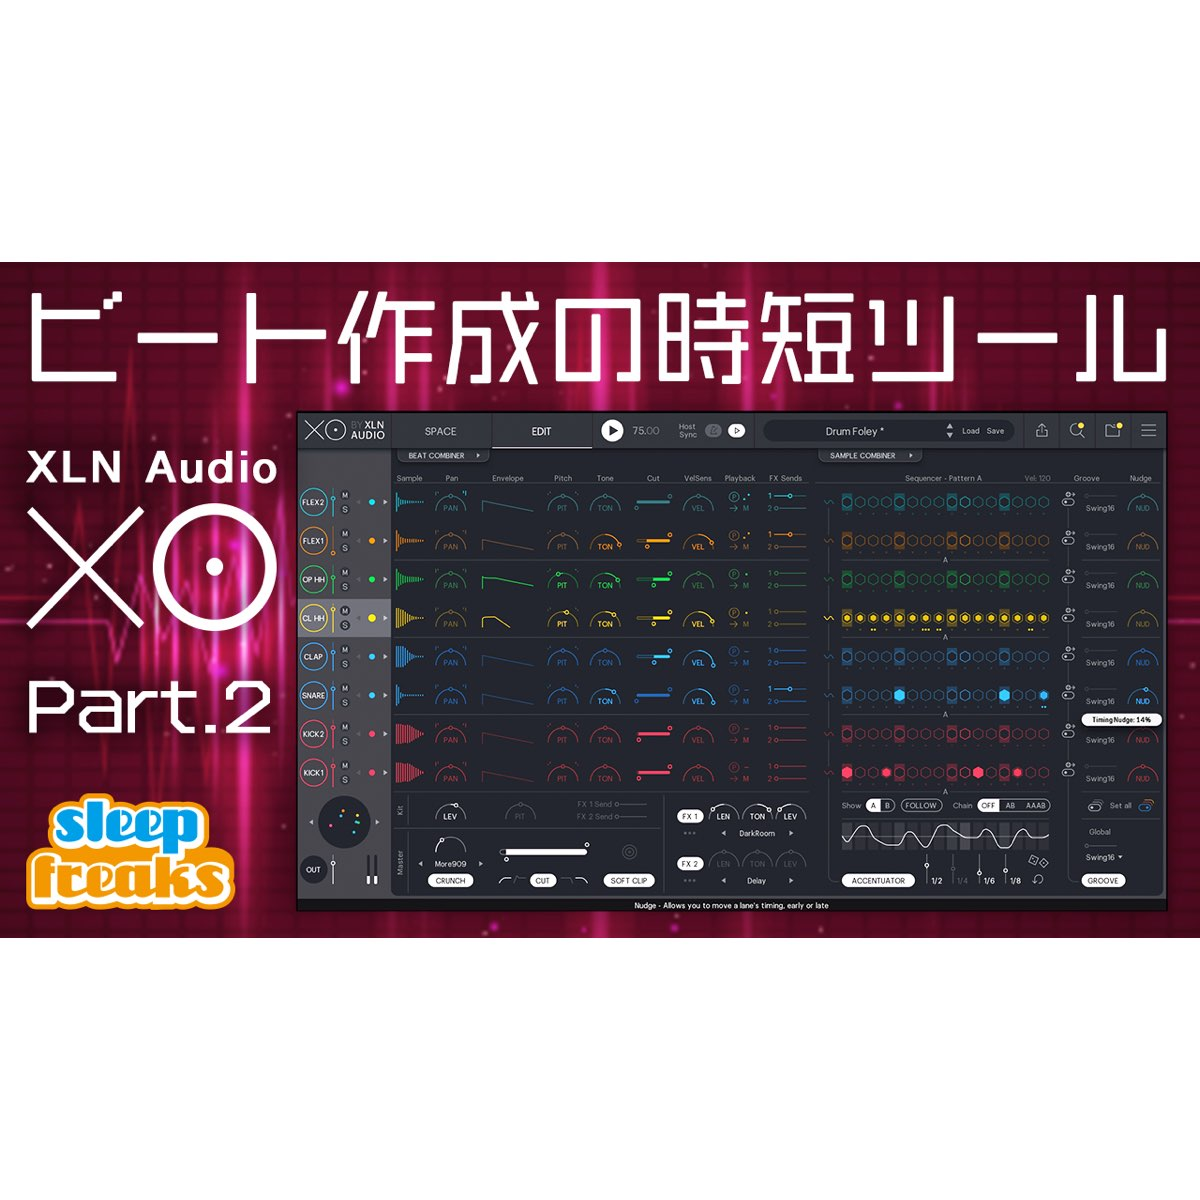 XLN Audio XO Tutorial ② Revolutionary Beat Making Sequencer